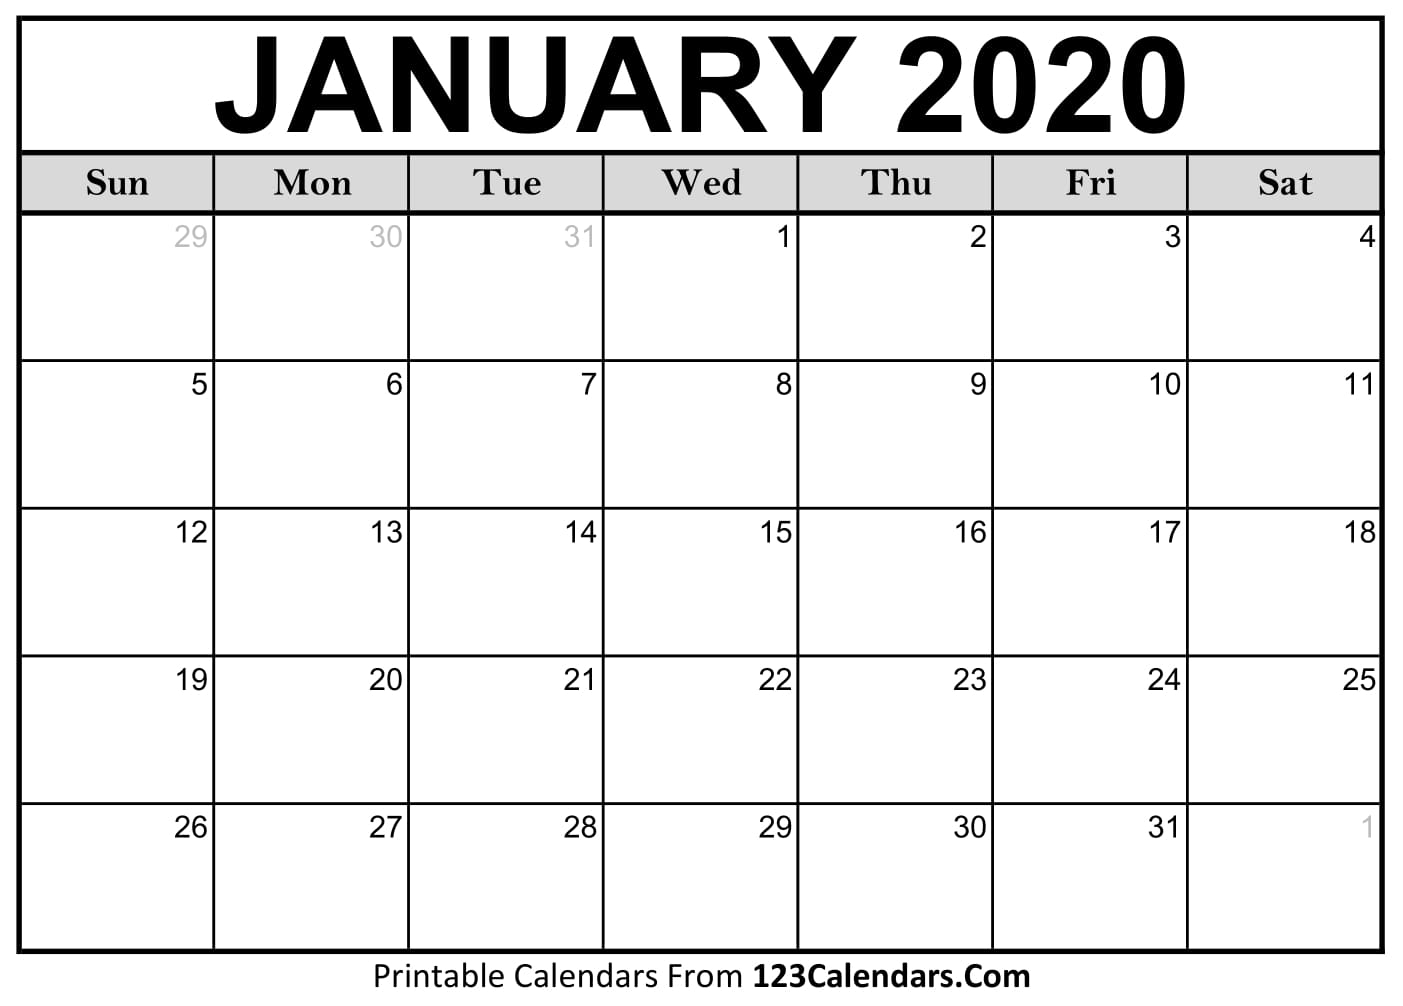 January 2020 Printable Calendar | 123Calendars in January 2020 Calendar 123Calendars